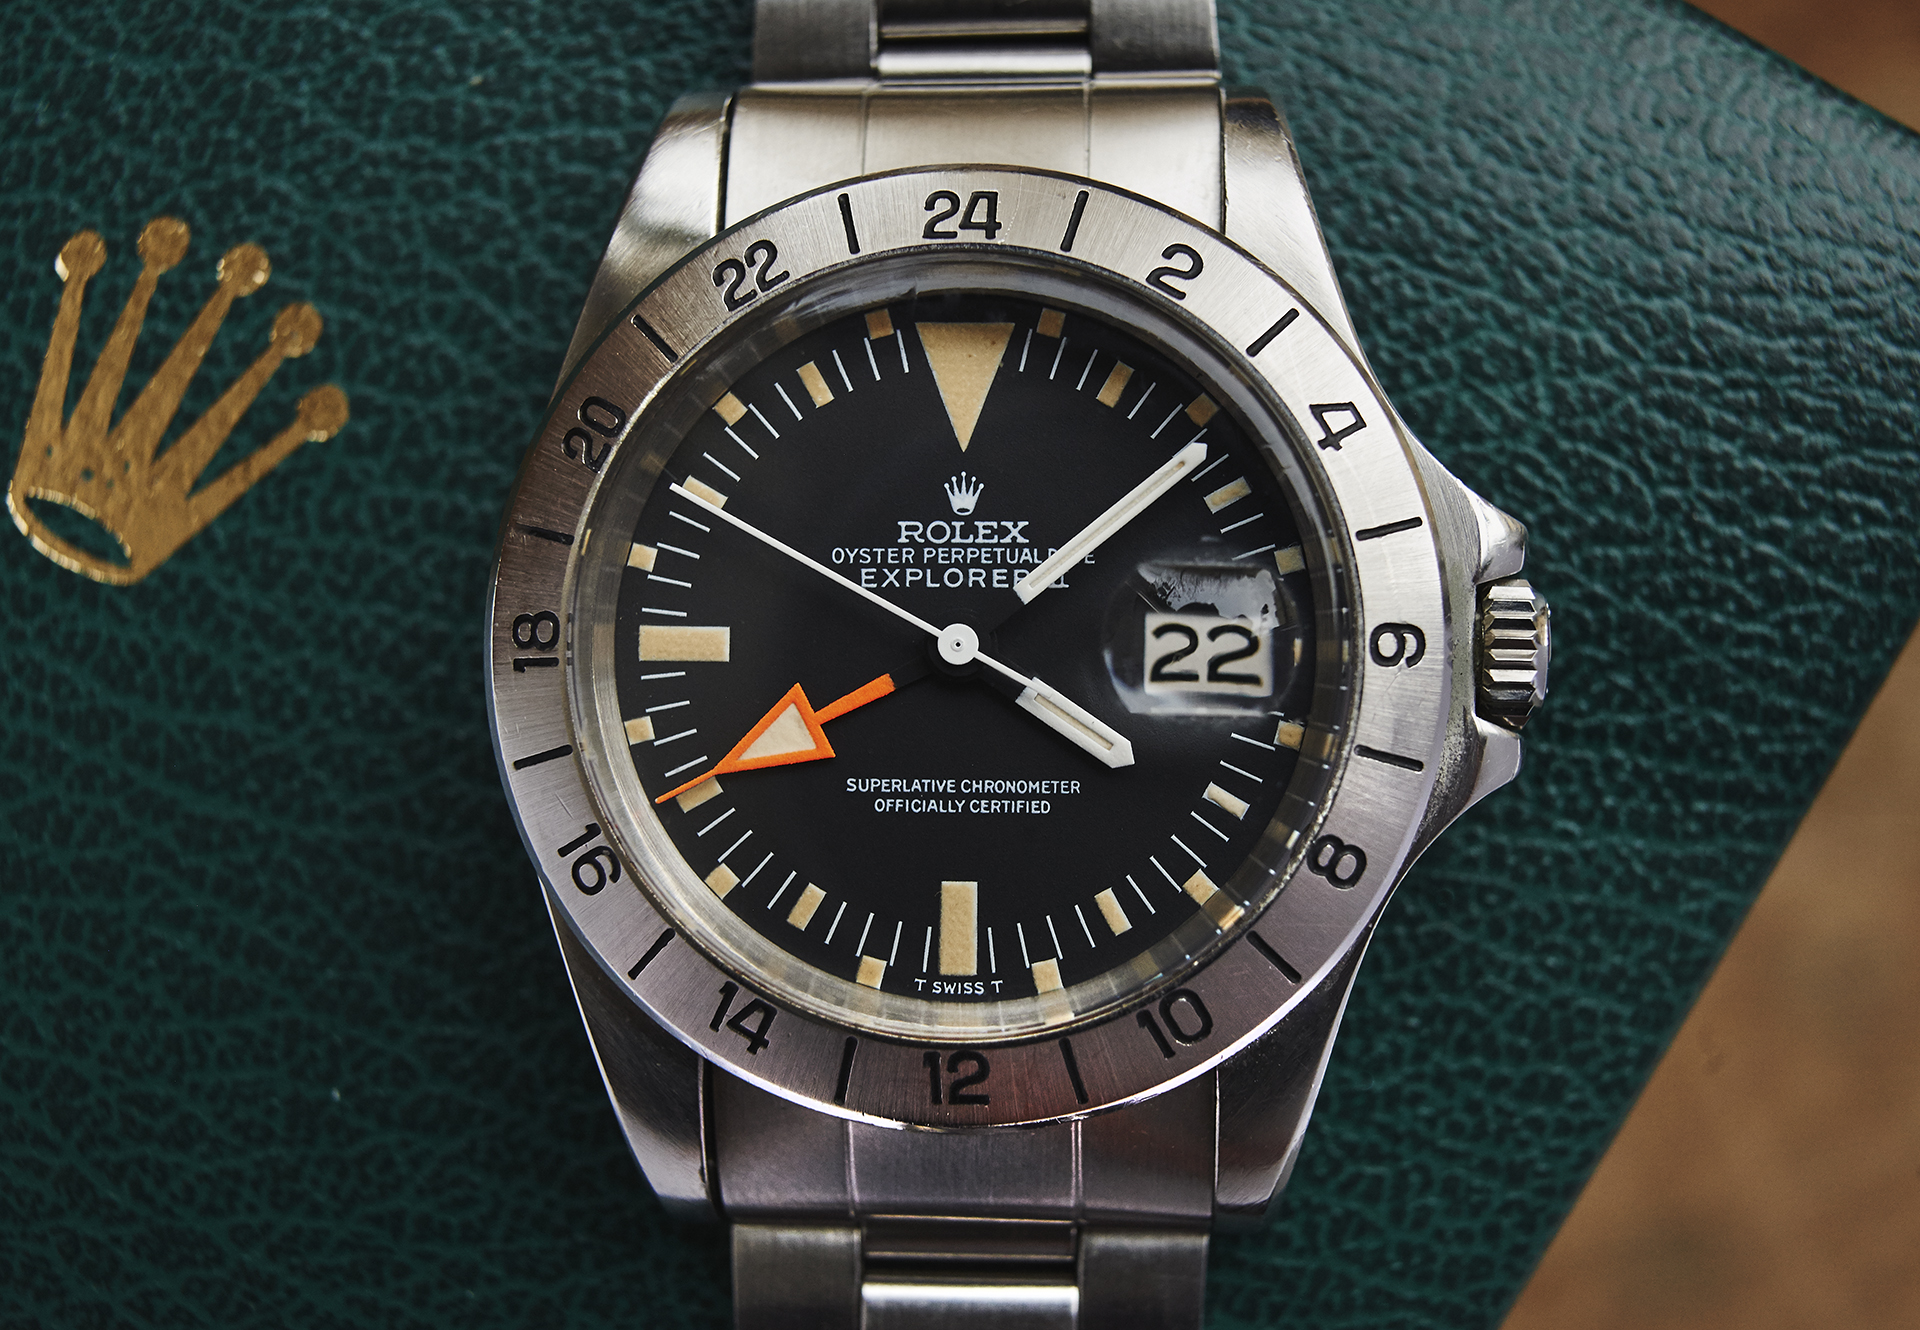 Rolex 1655 Explorer2, Orange Hand, MK1